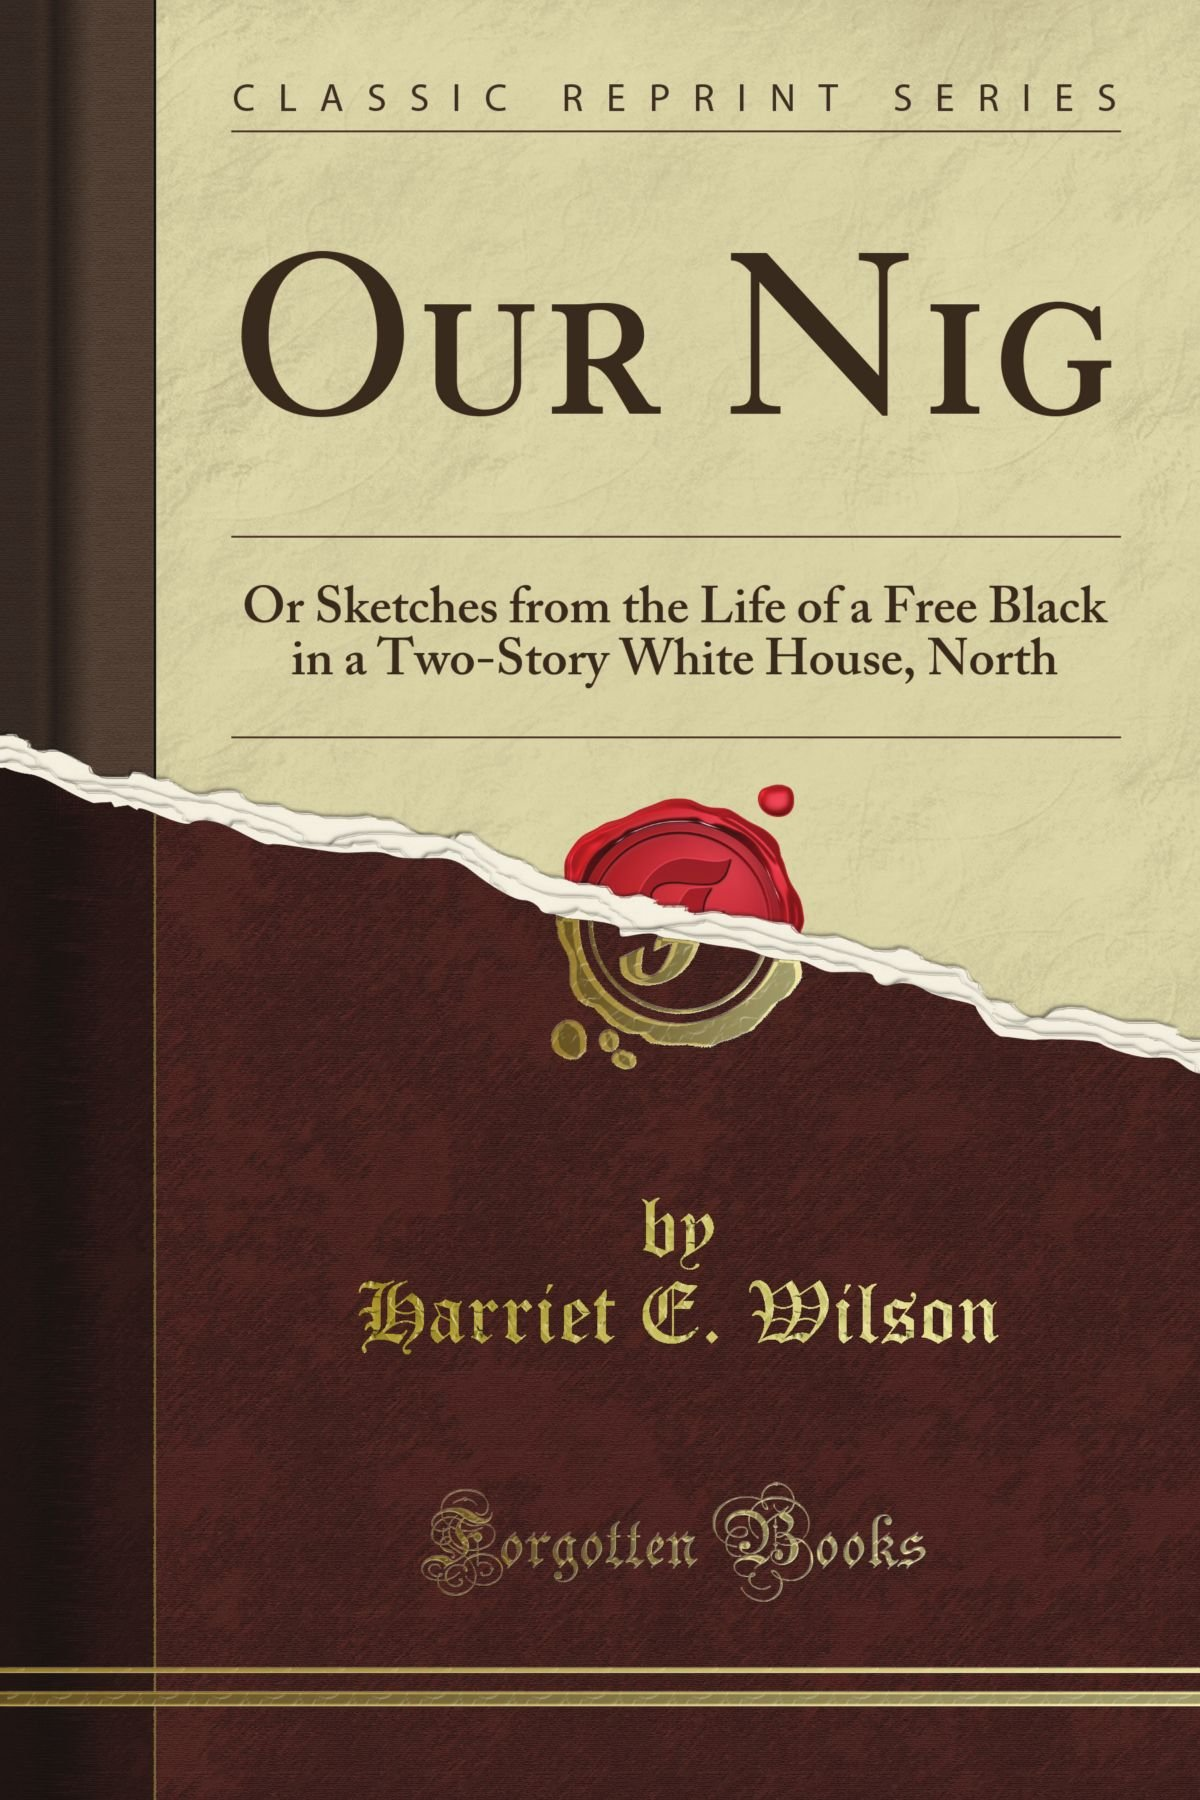 Our Nig: Or Sketches from the Life of a Free Black in a Two-Story White House, North (Classic Reprint) ebook